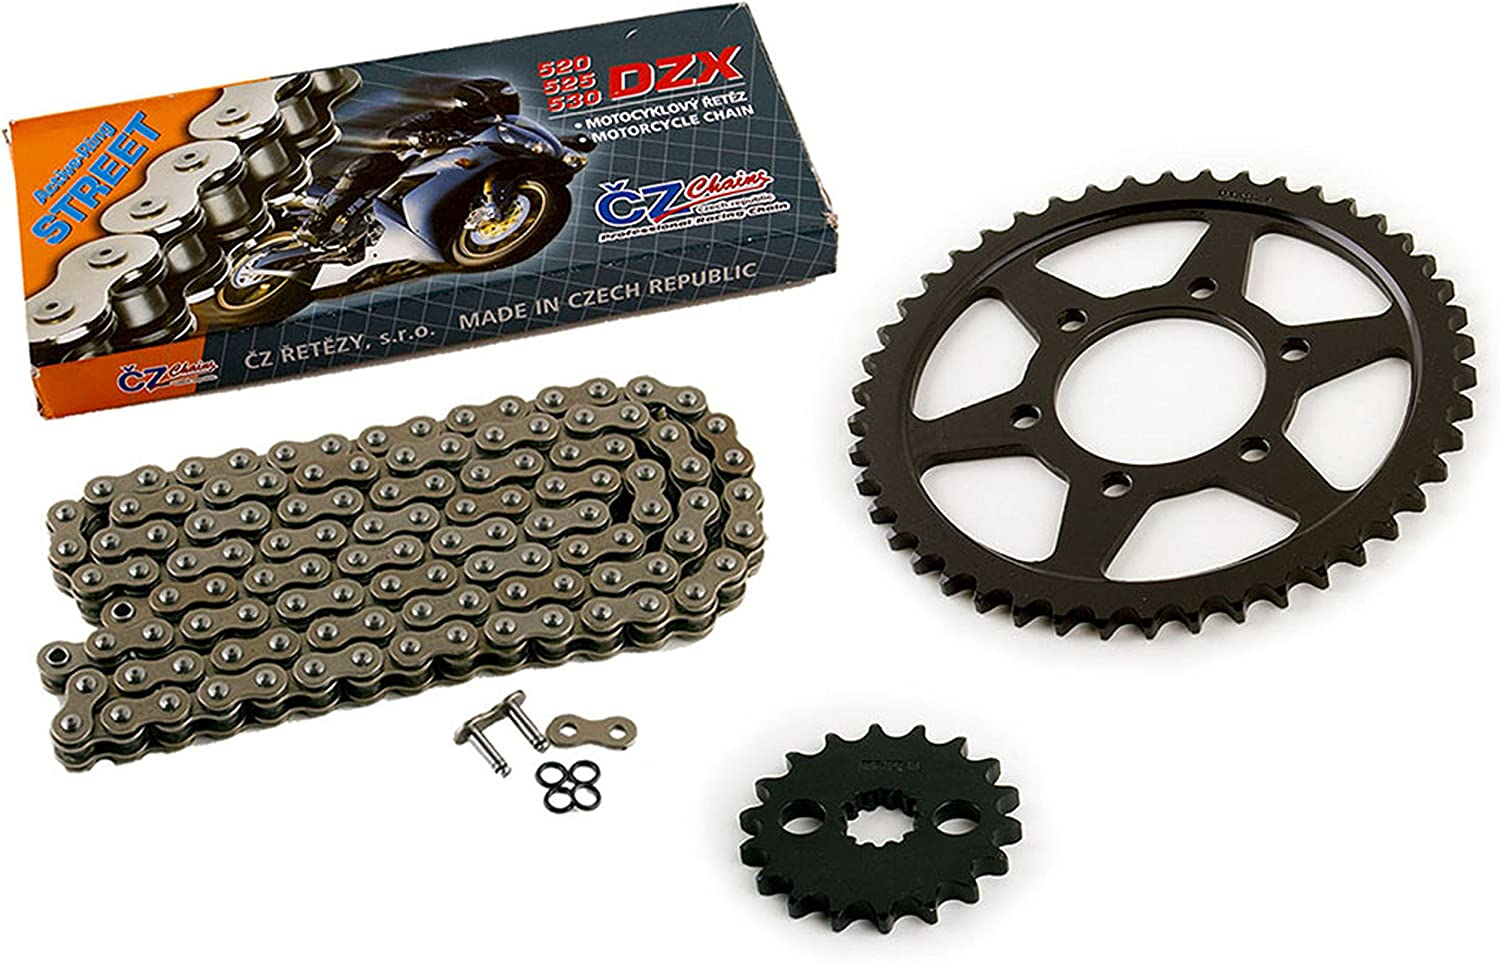 2001 Kawasaki Ninja ZX-12R ZX1200A CZ DZX X Ring Chain and Sprocket 18//46 120L